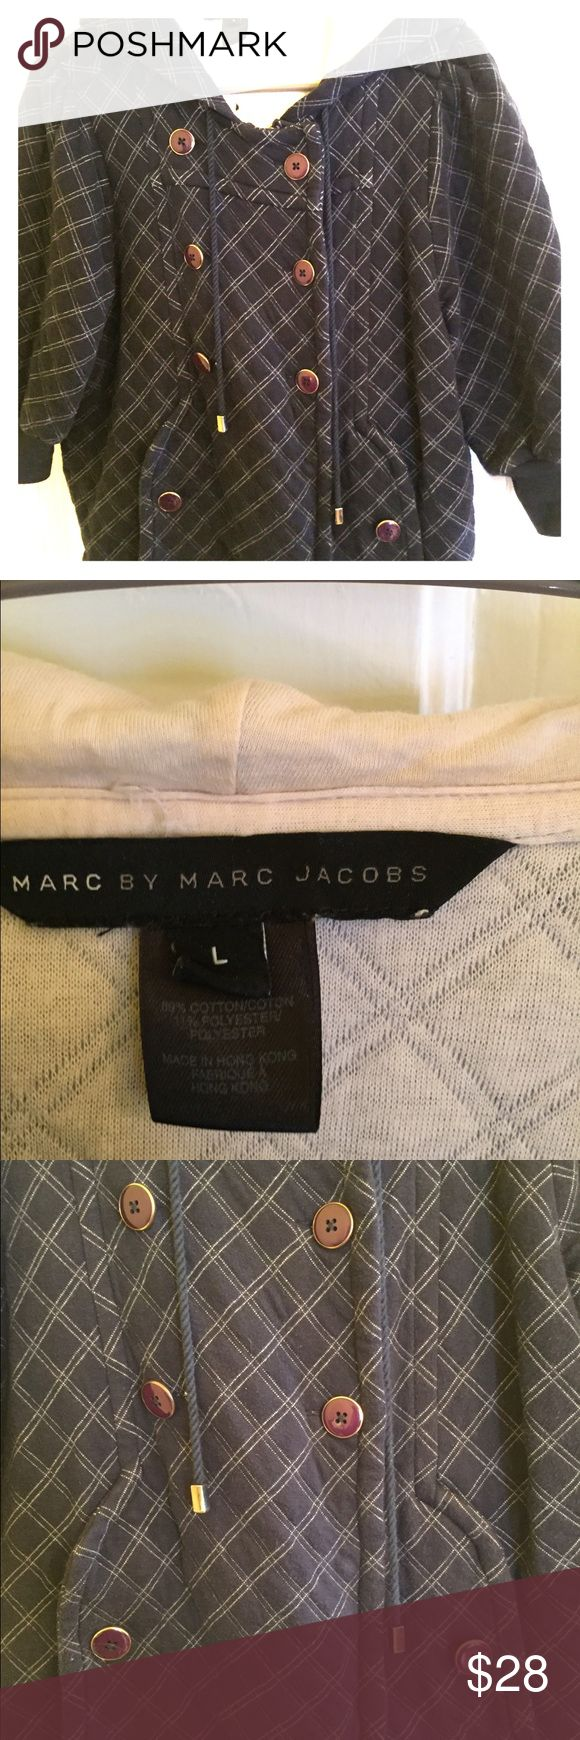 Marc by Marc Jacobs navy hoodie Large Marc by Marc Jacobs 3/4 sleeve hoodie. Navy w ivory trim. Gold button details. Worn but good condition. Marc by Marc Jacobs Tops Sweatshirts & Hoodies